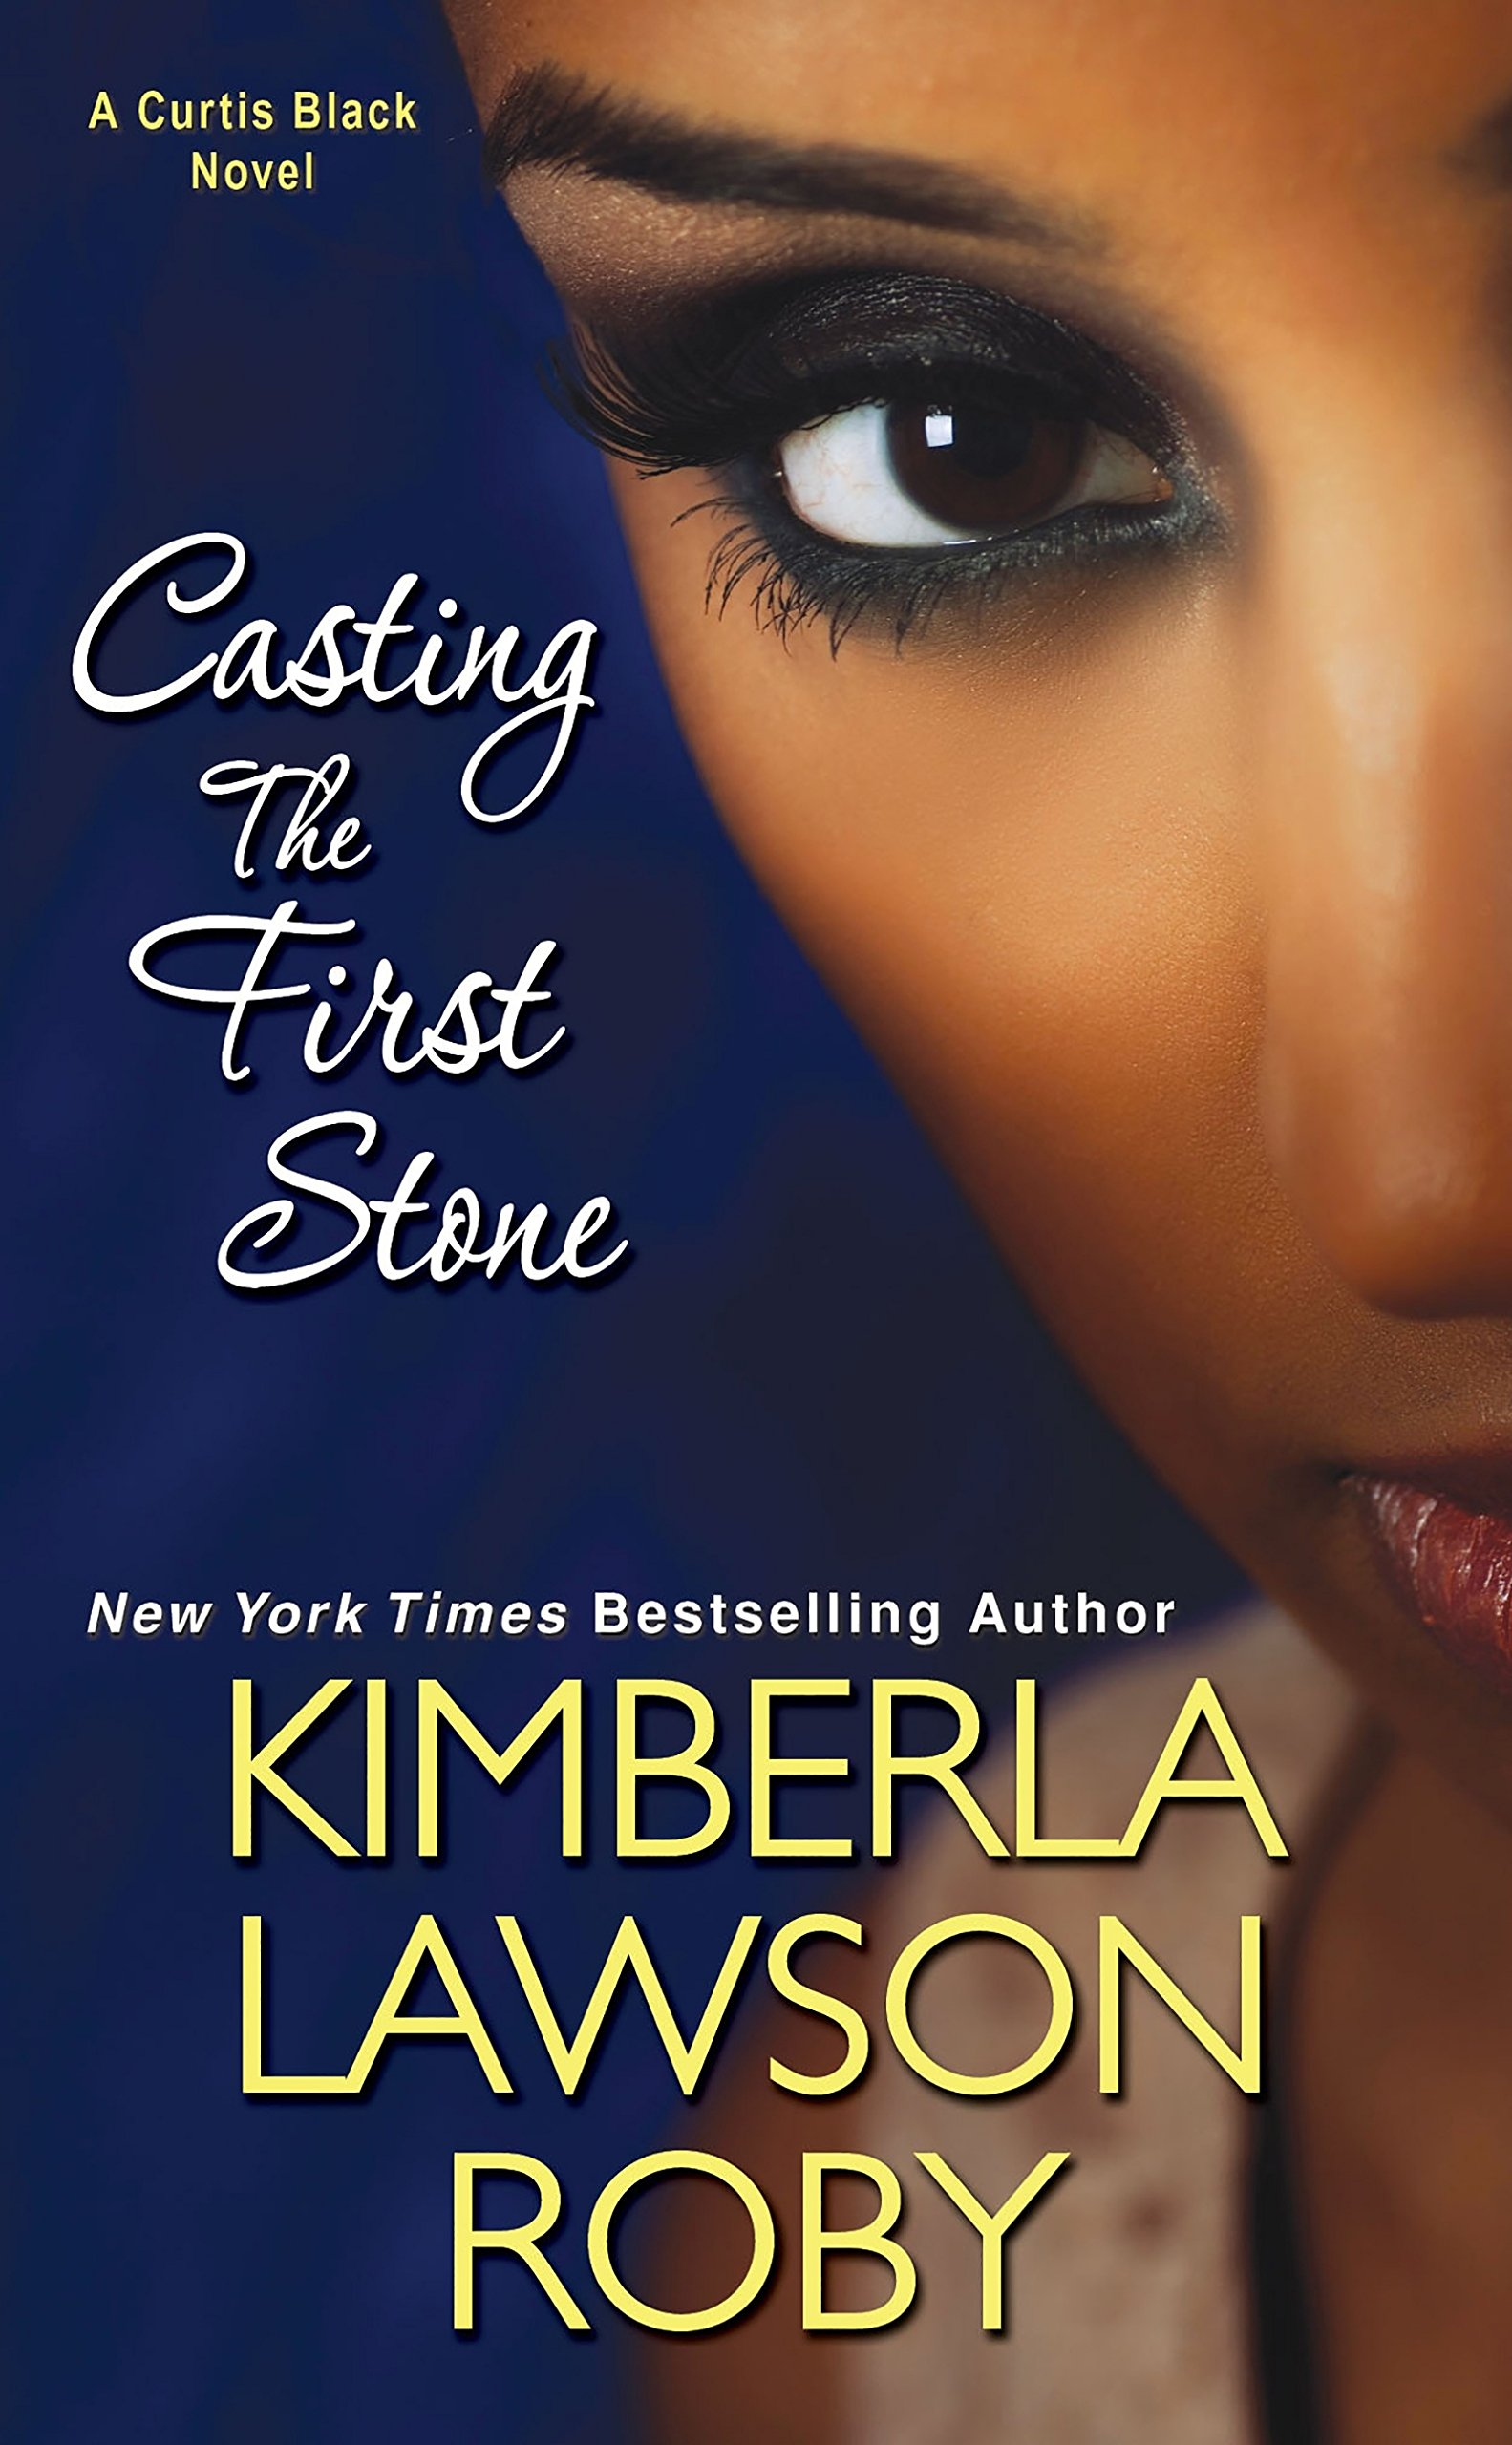 Casting The First Stone ePub fb2 book